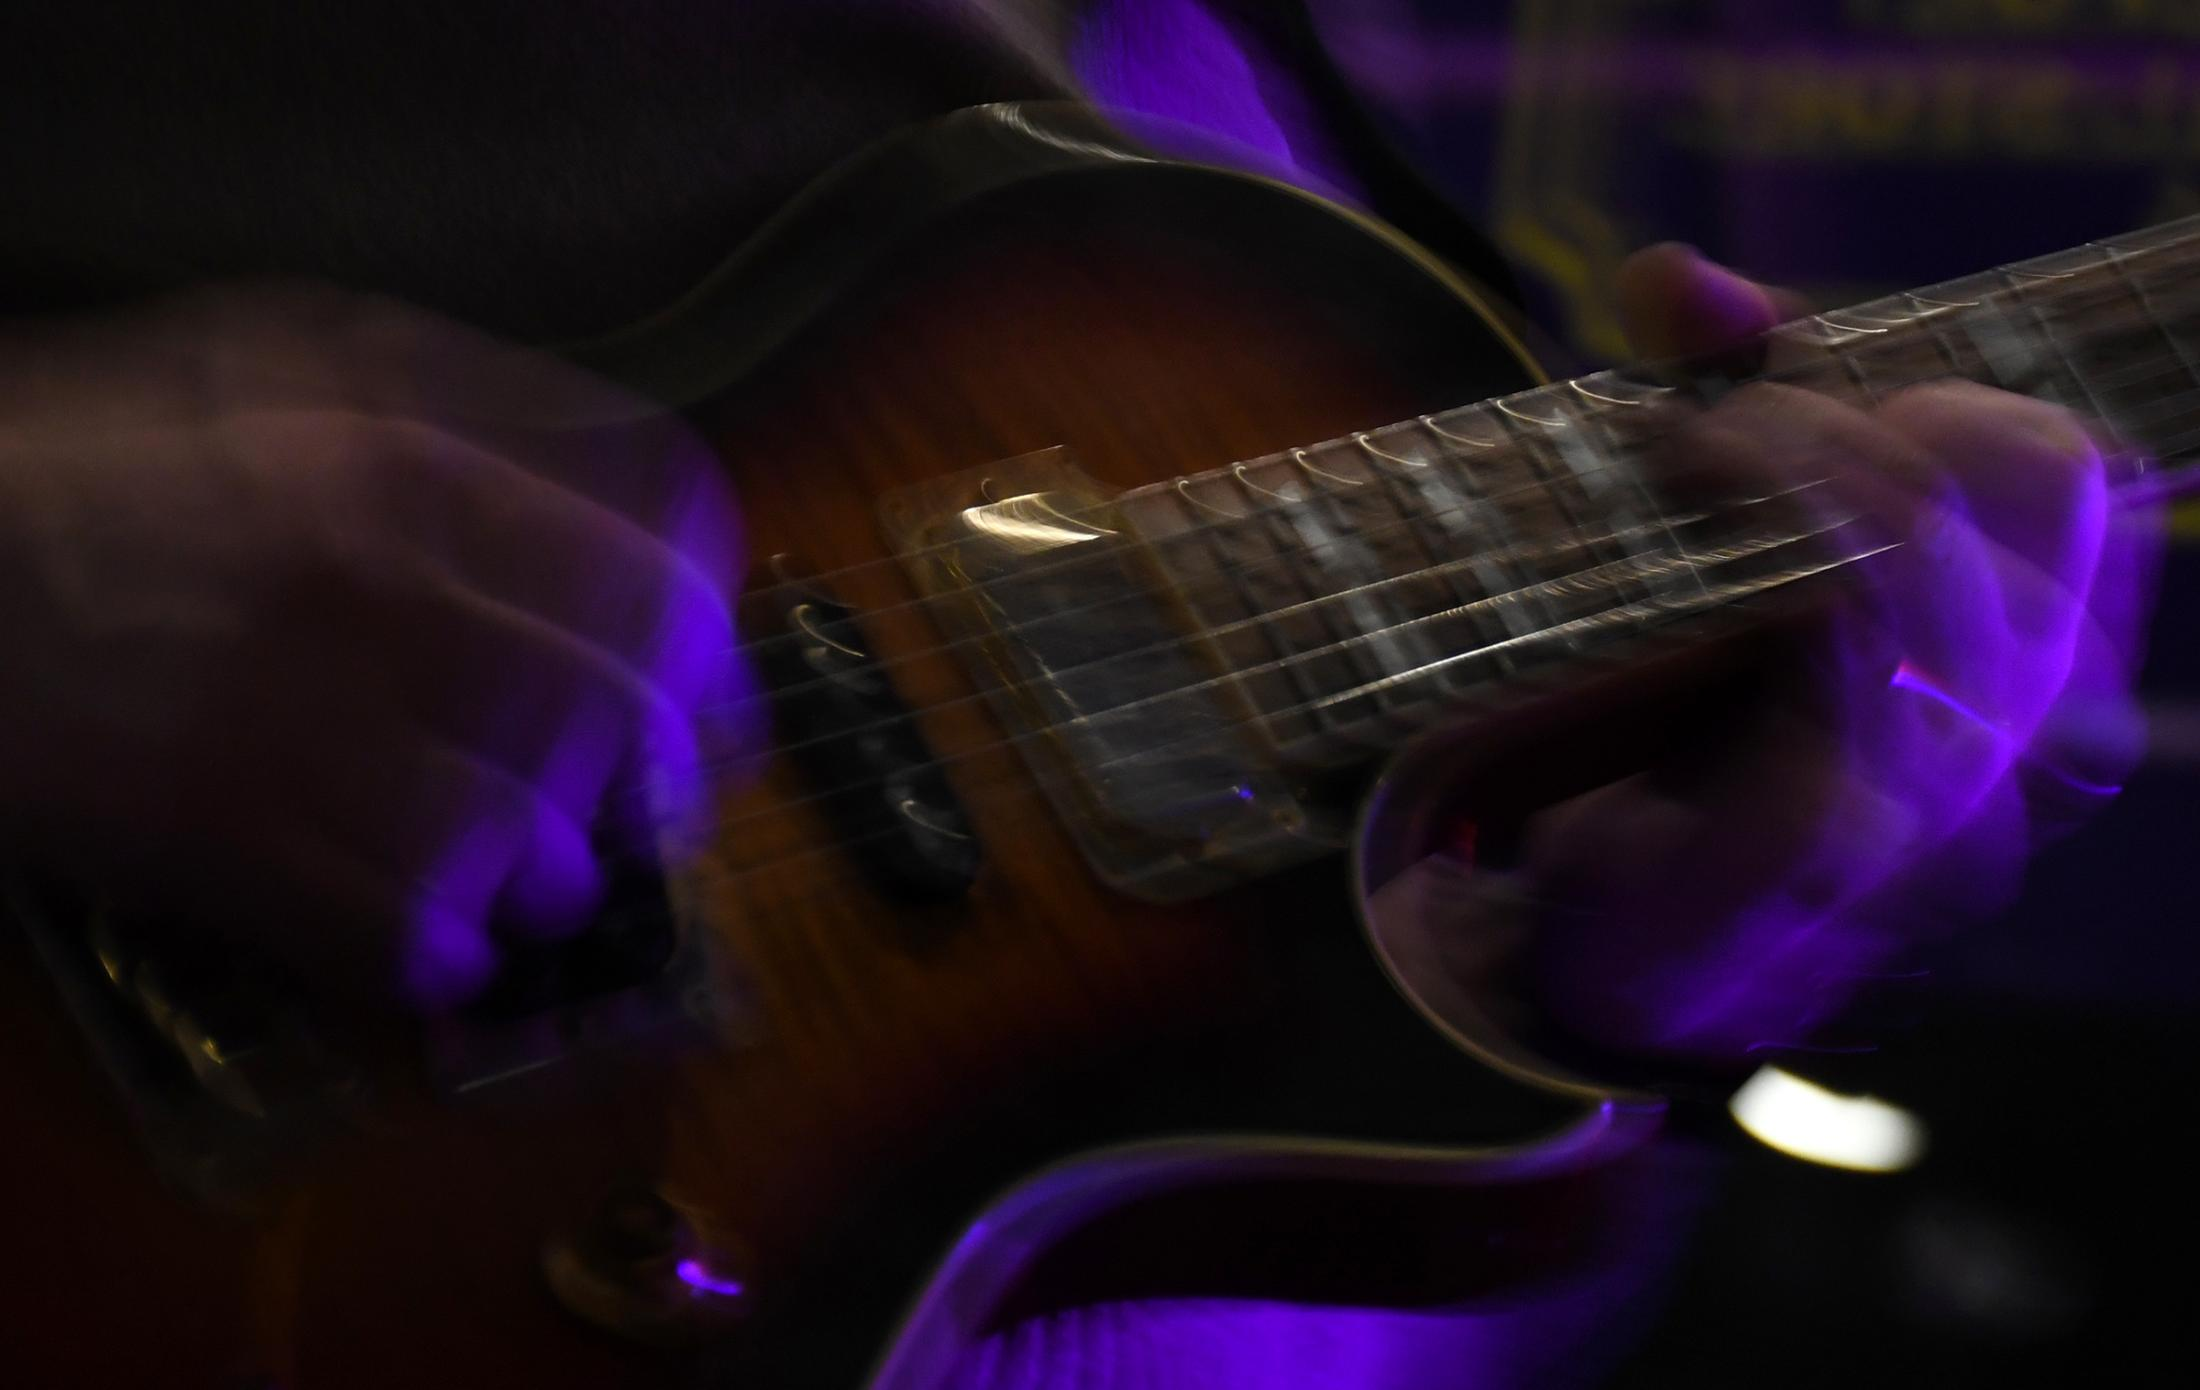 """Larsen's strings and fingers move at high speed as he plays his solo in """"Too Thick to Drink"""" at the Rocheport General Store on Friday, Nov. 15, 2019, in Rocheport, Missouri. The song receives part of their first album's name """"Too Thick to Drink, Too Thin to Plow"""" that was released on summer of 2019."""